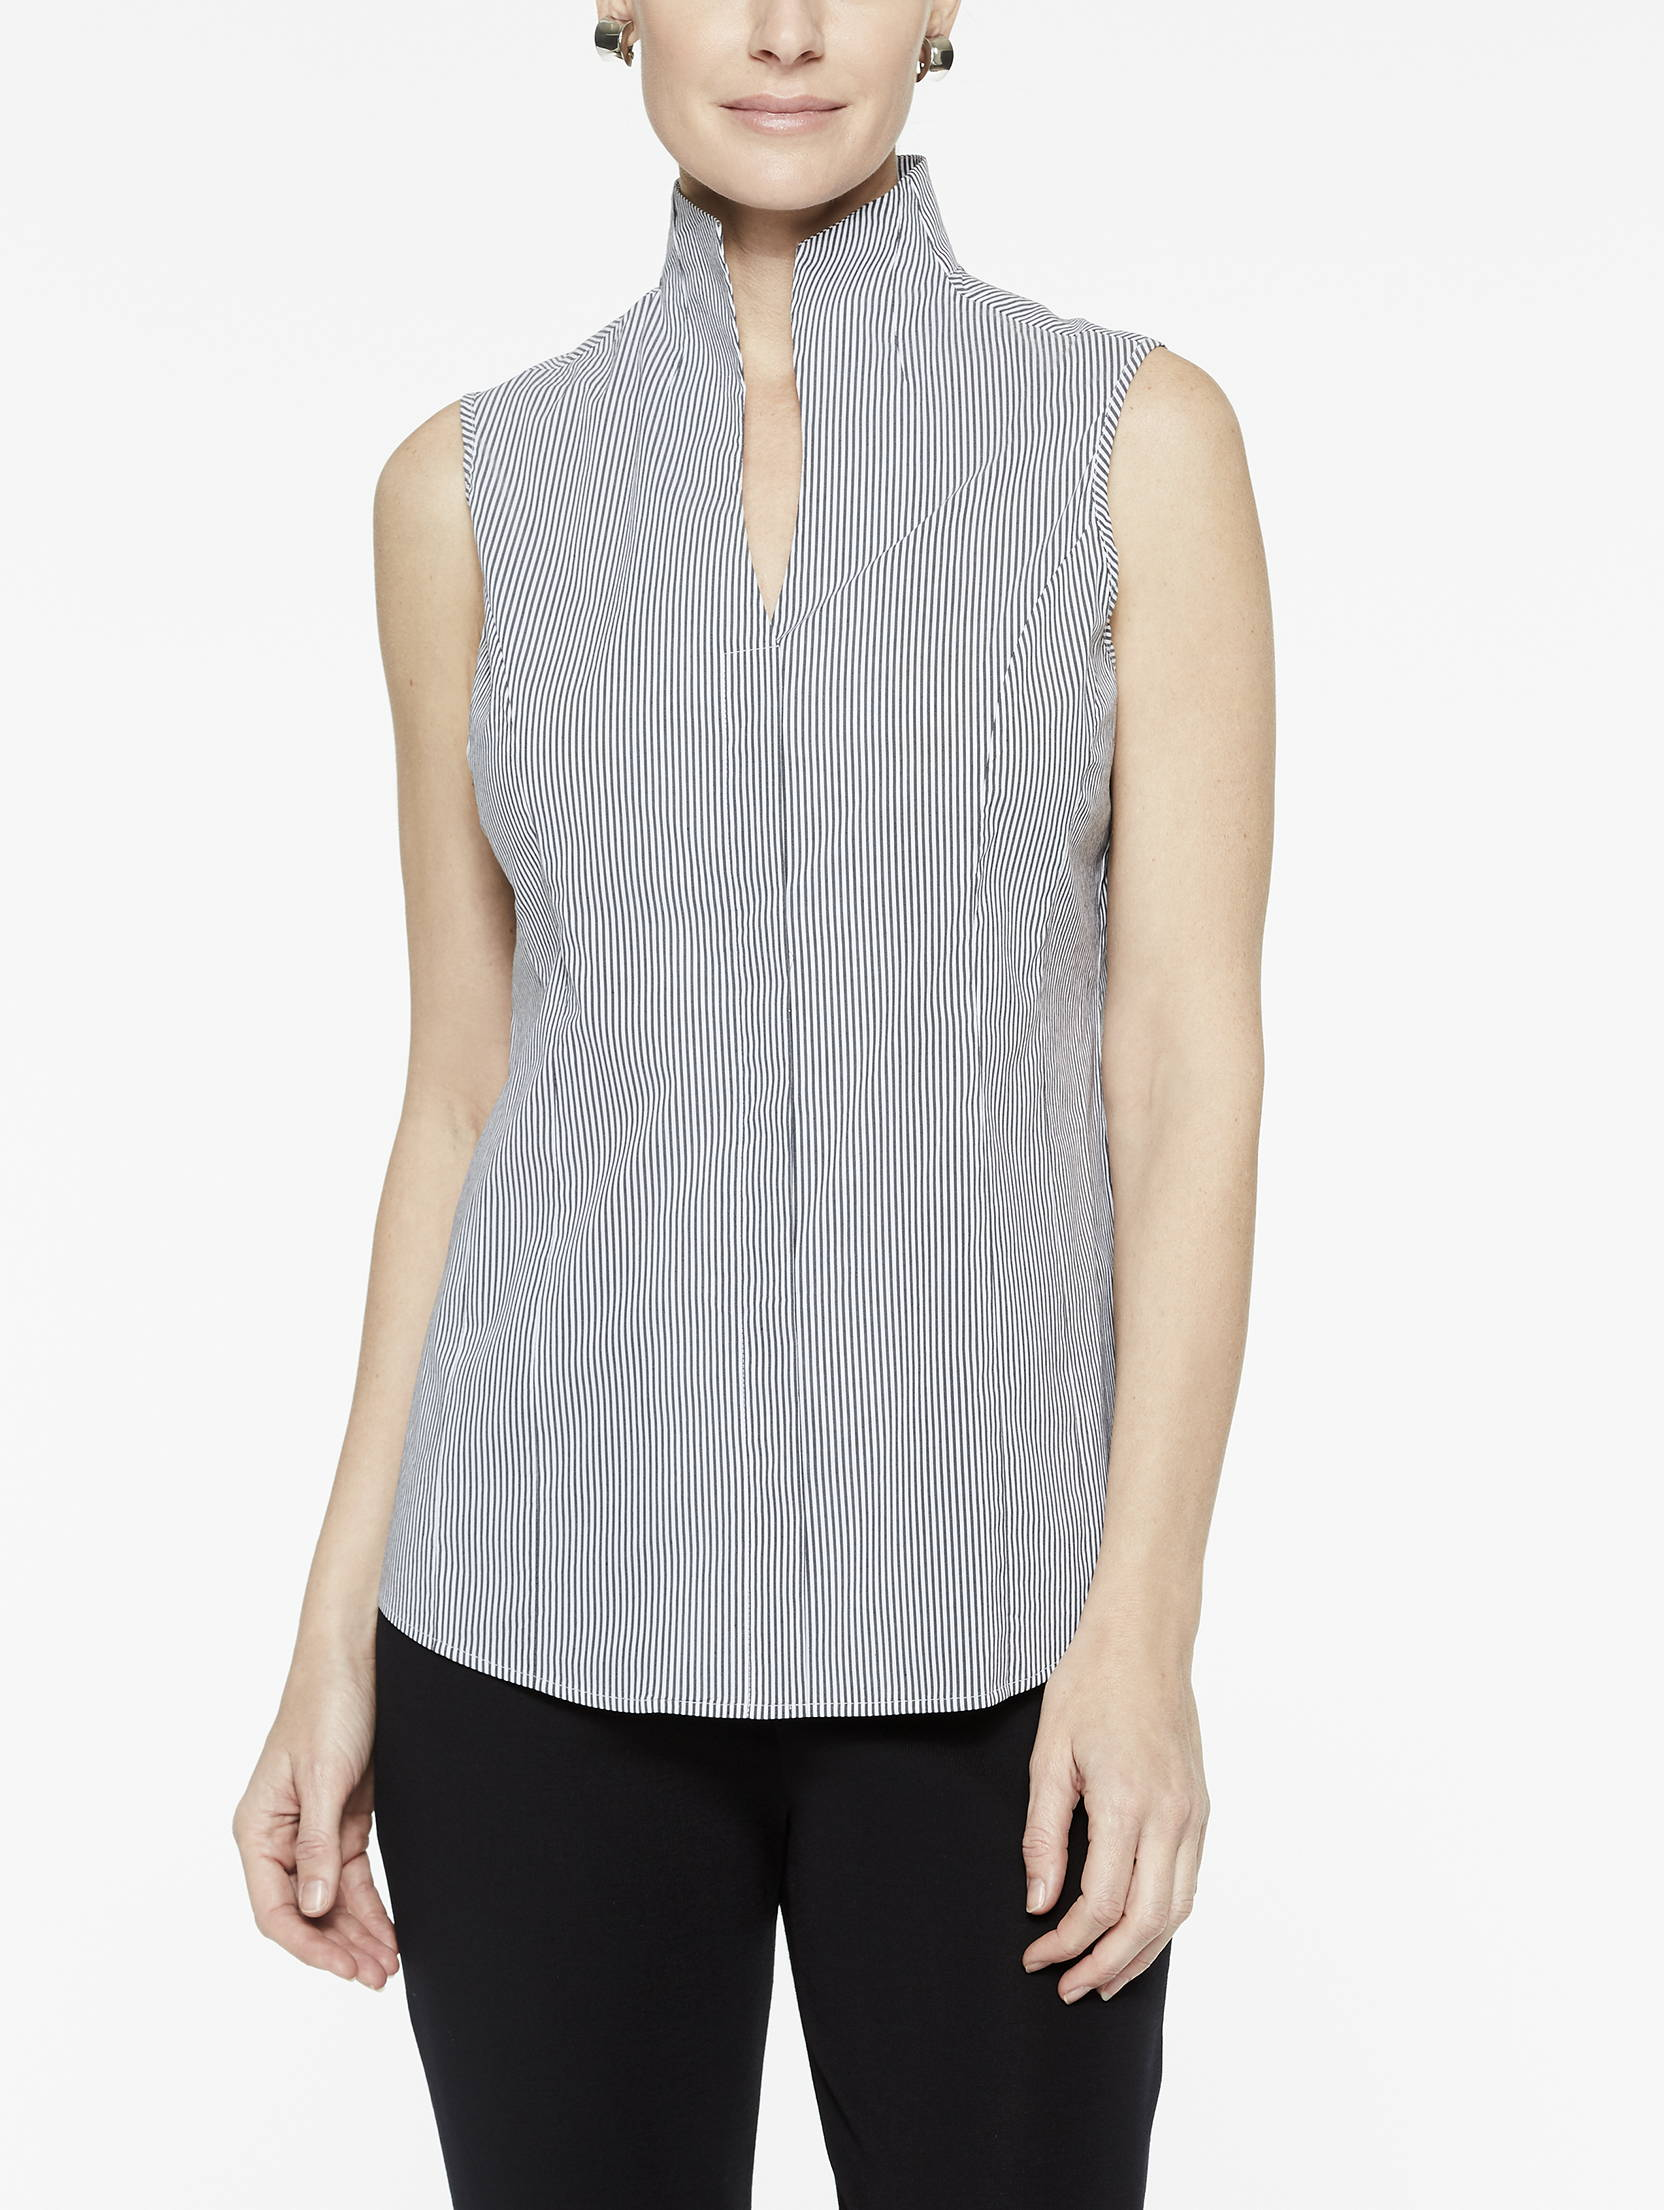 Pinstripe Sleeveless Stretch Cotton Blouse in Black and White